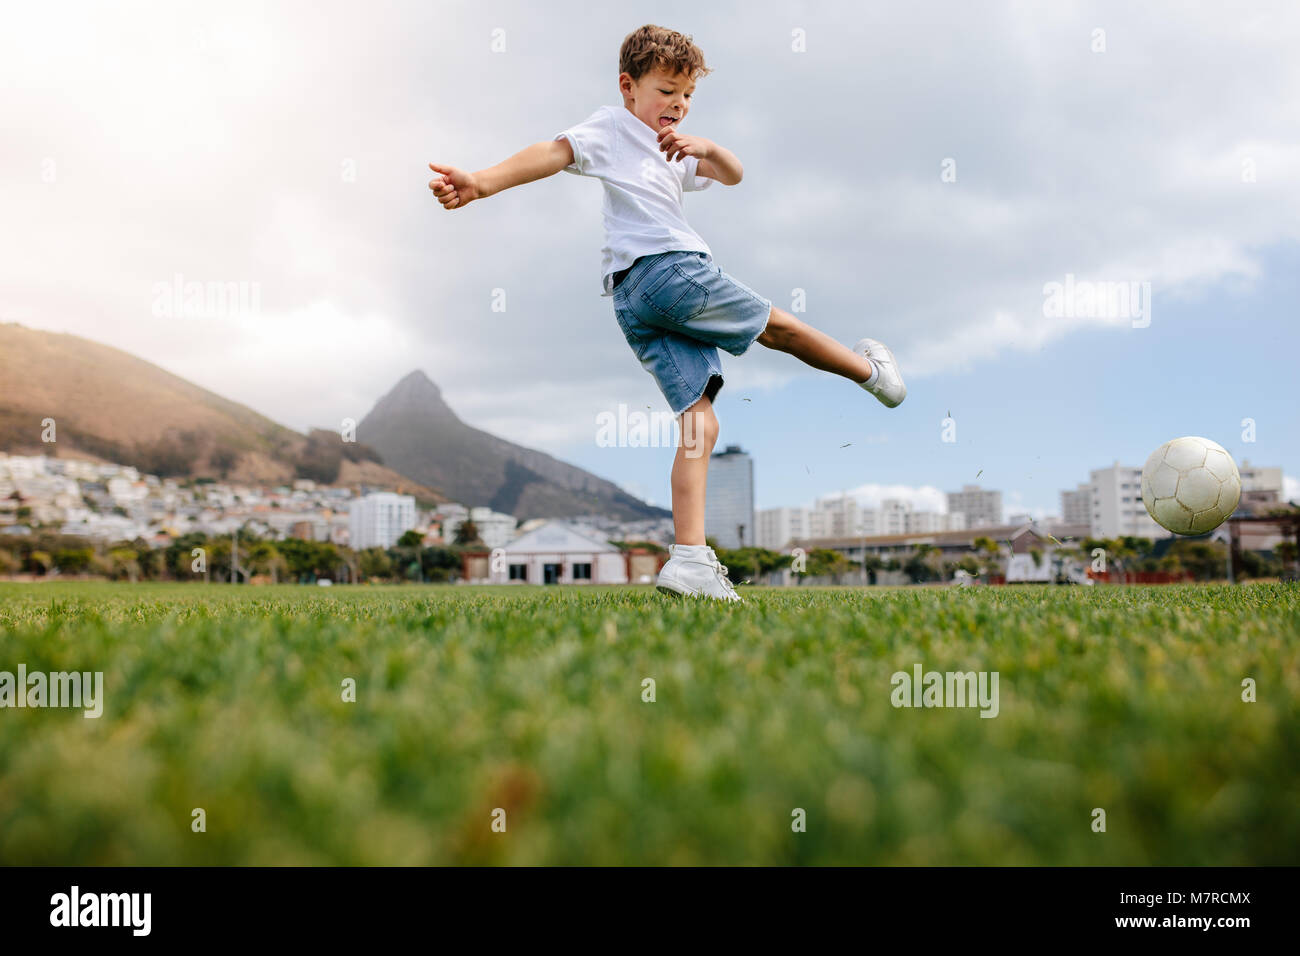 Boy kicking a football in a playground. Low angle view of a boy playing football in a playfield. - Stock Image